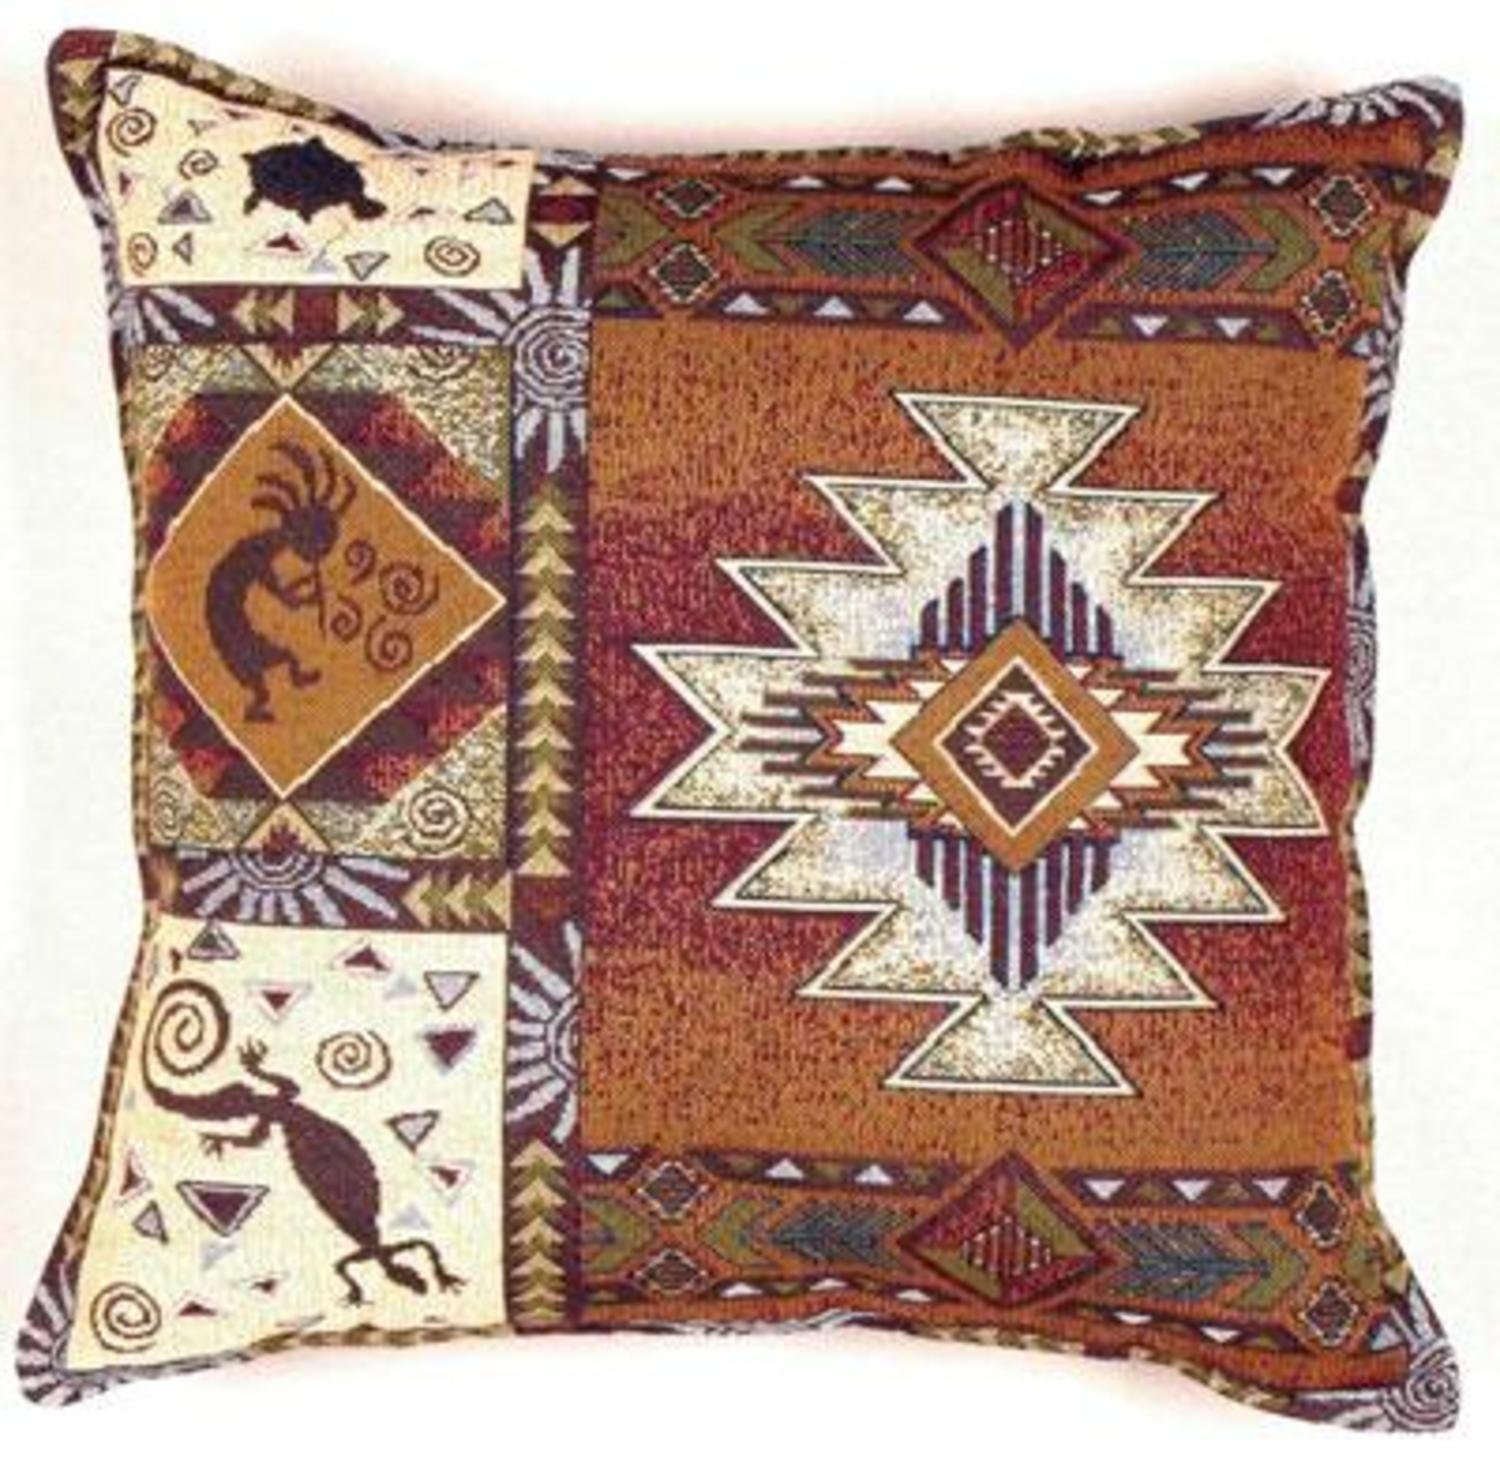 Kokopelli southwestern decorative tapestry toss pillow southwestern style native american style casual style by simply home ship from us walmart com